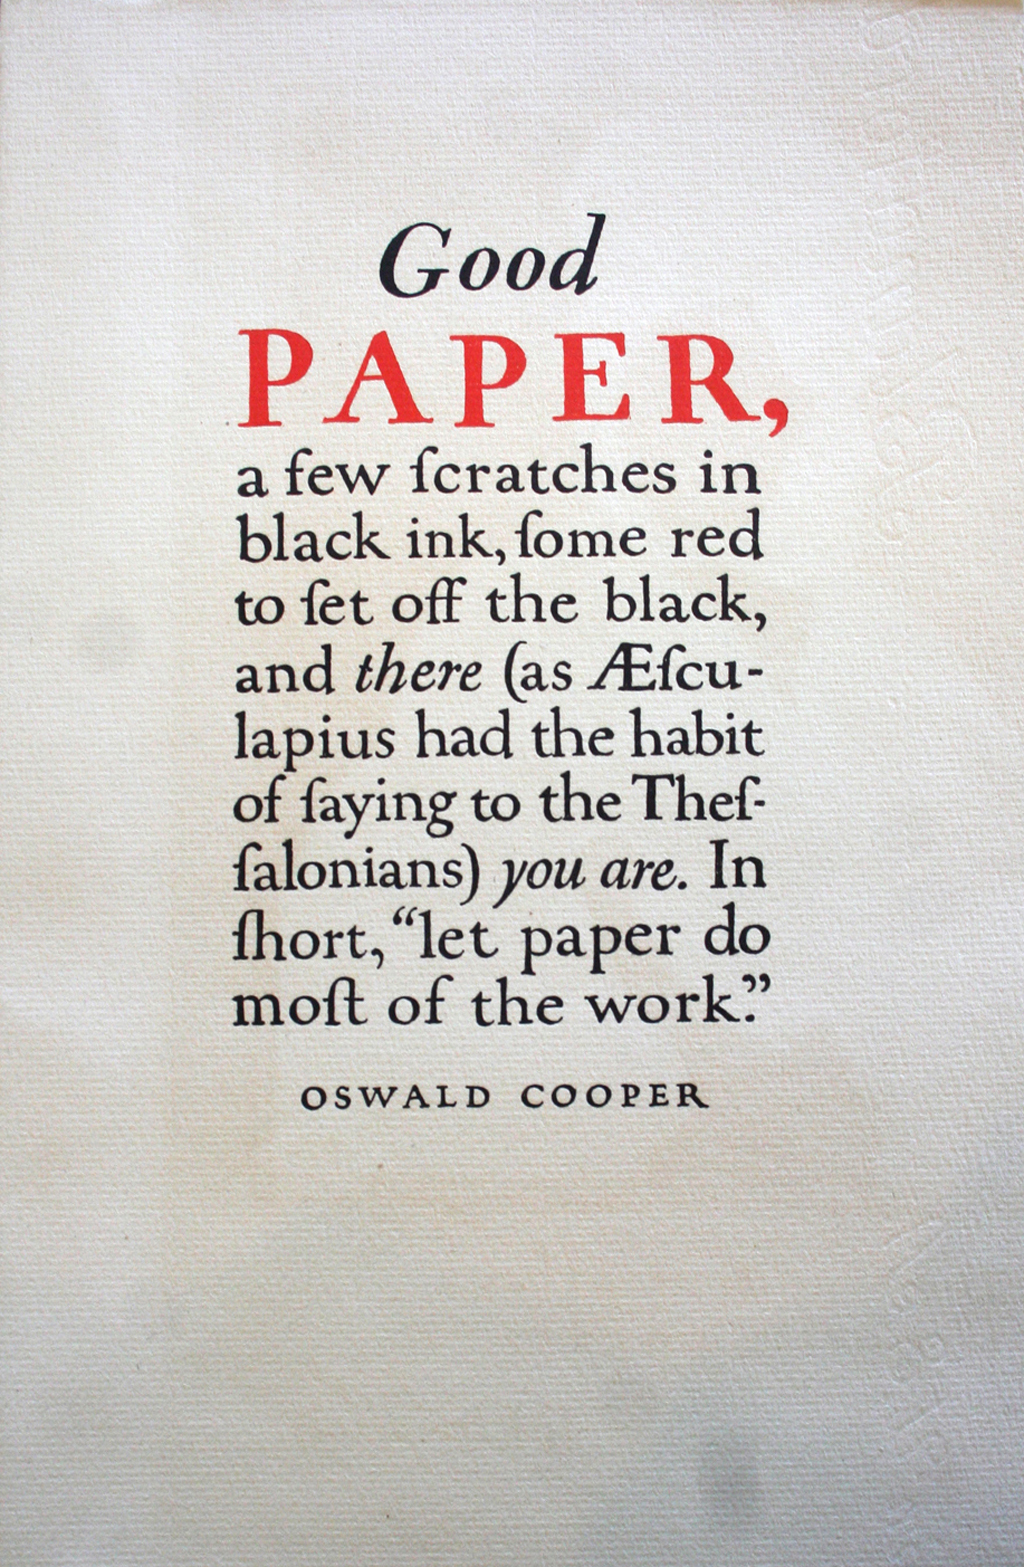 """Good Paper"" (Strathmore Paper Co., 1923). Design by Oswald Cooper."